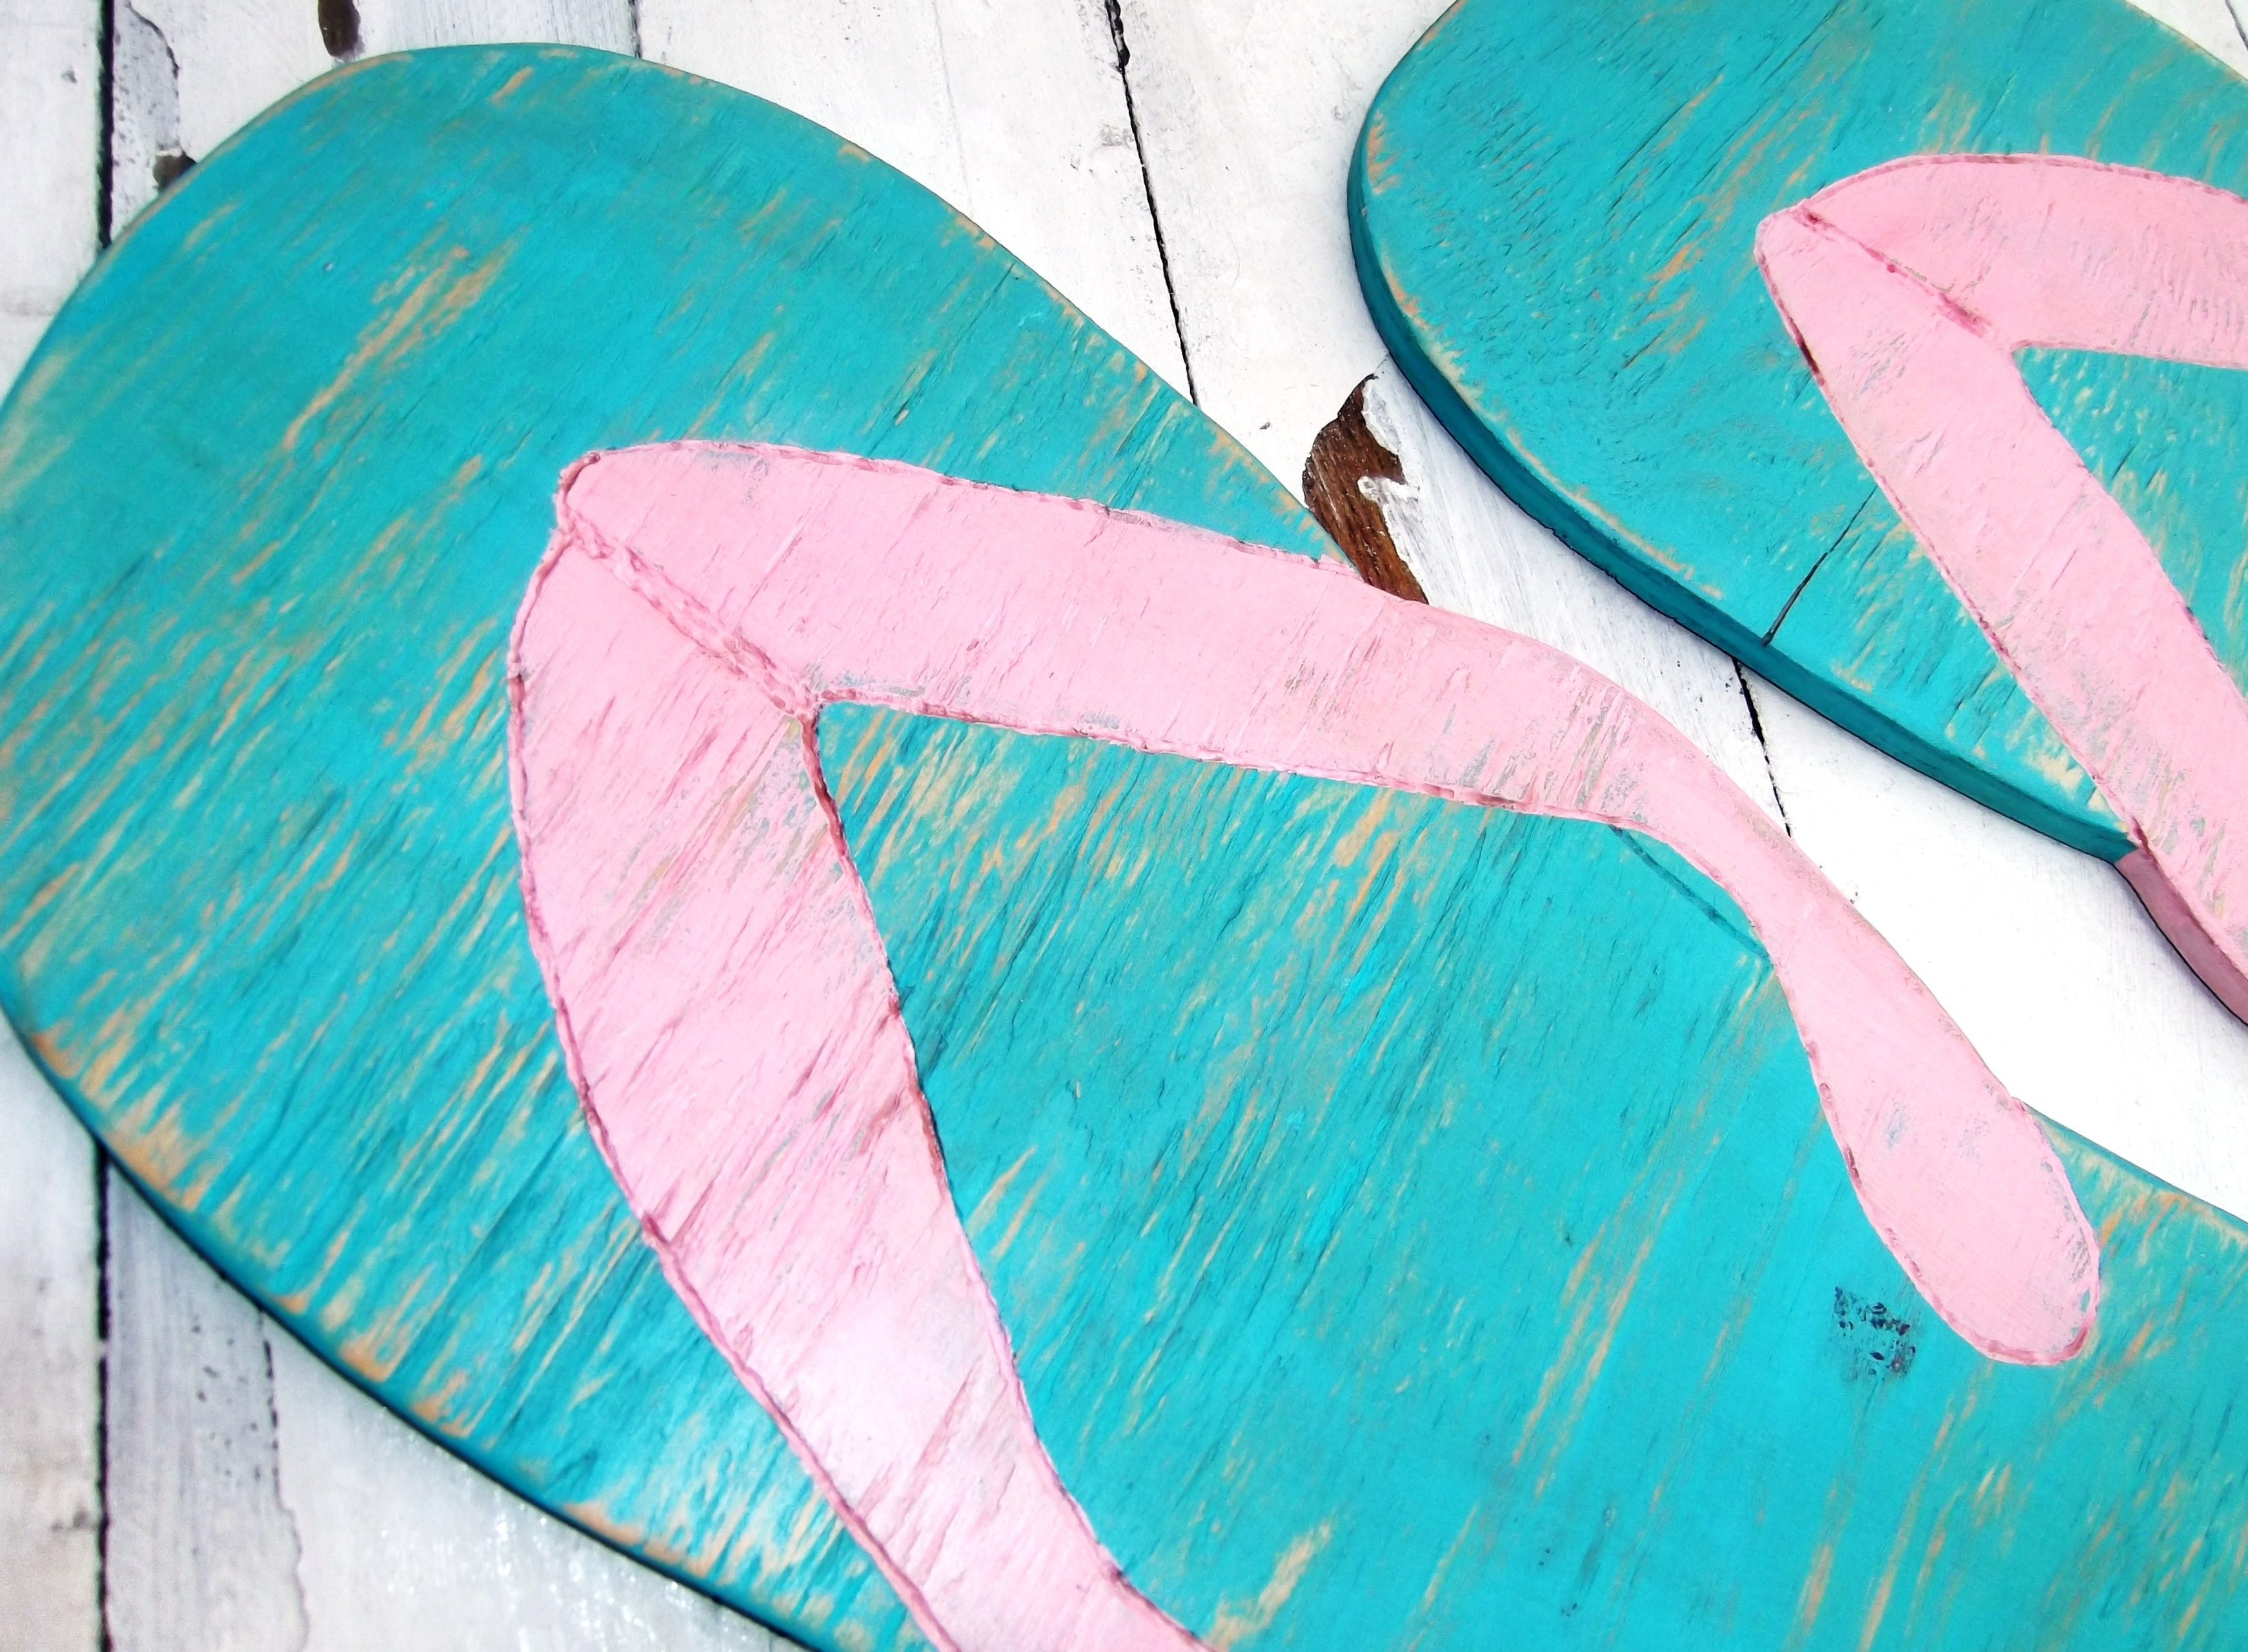 Huge Flip Flops Beach House Decoration, Wedding Decor Supersized Within Well Liked Flip Flop Wall Art (View 2 of 15)